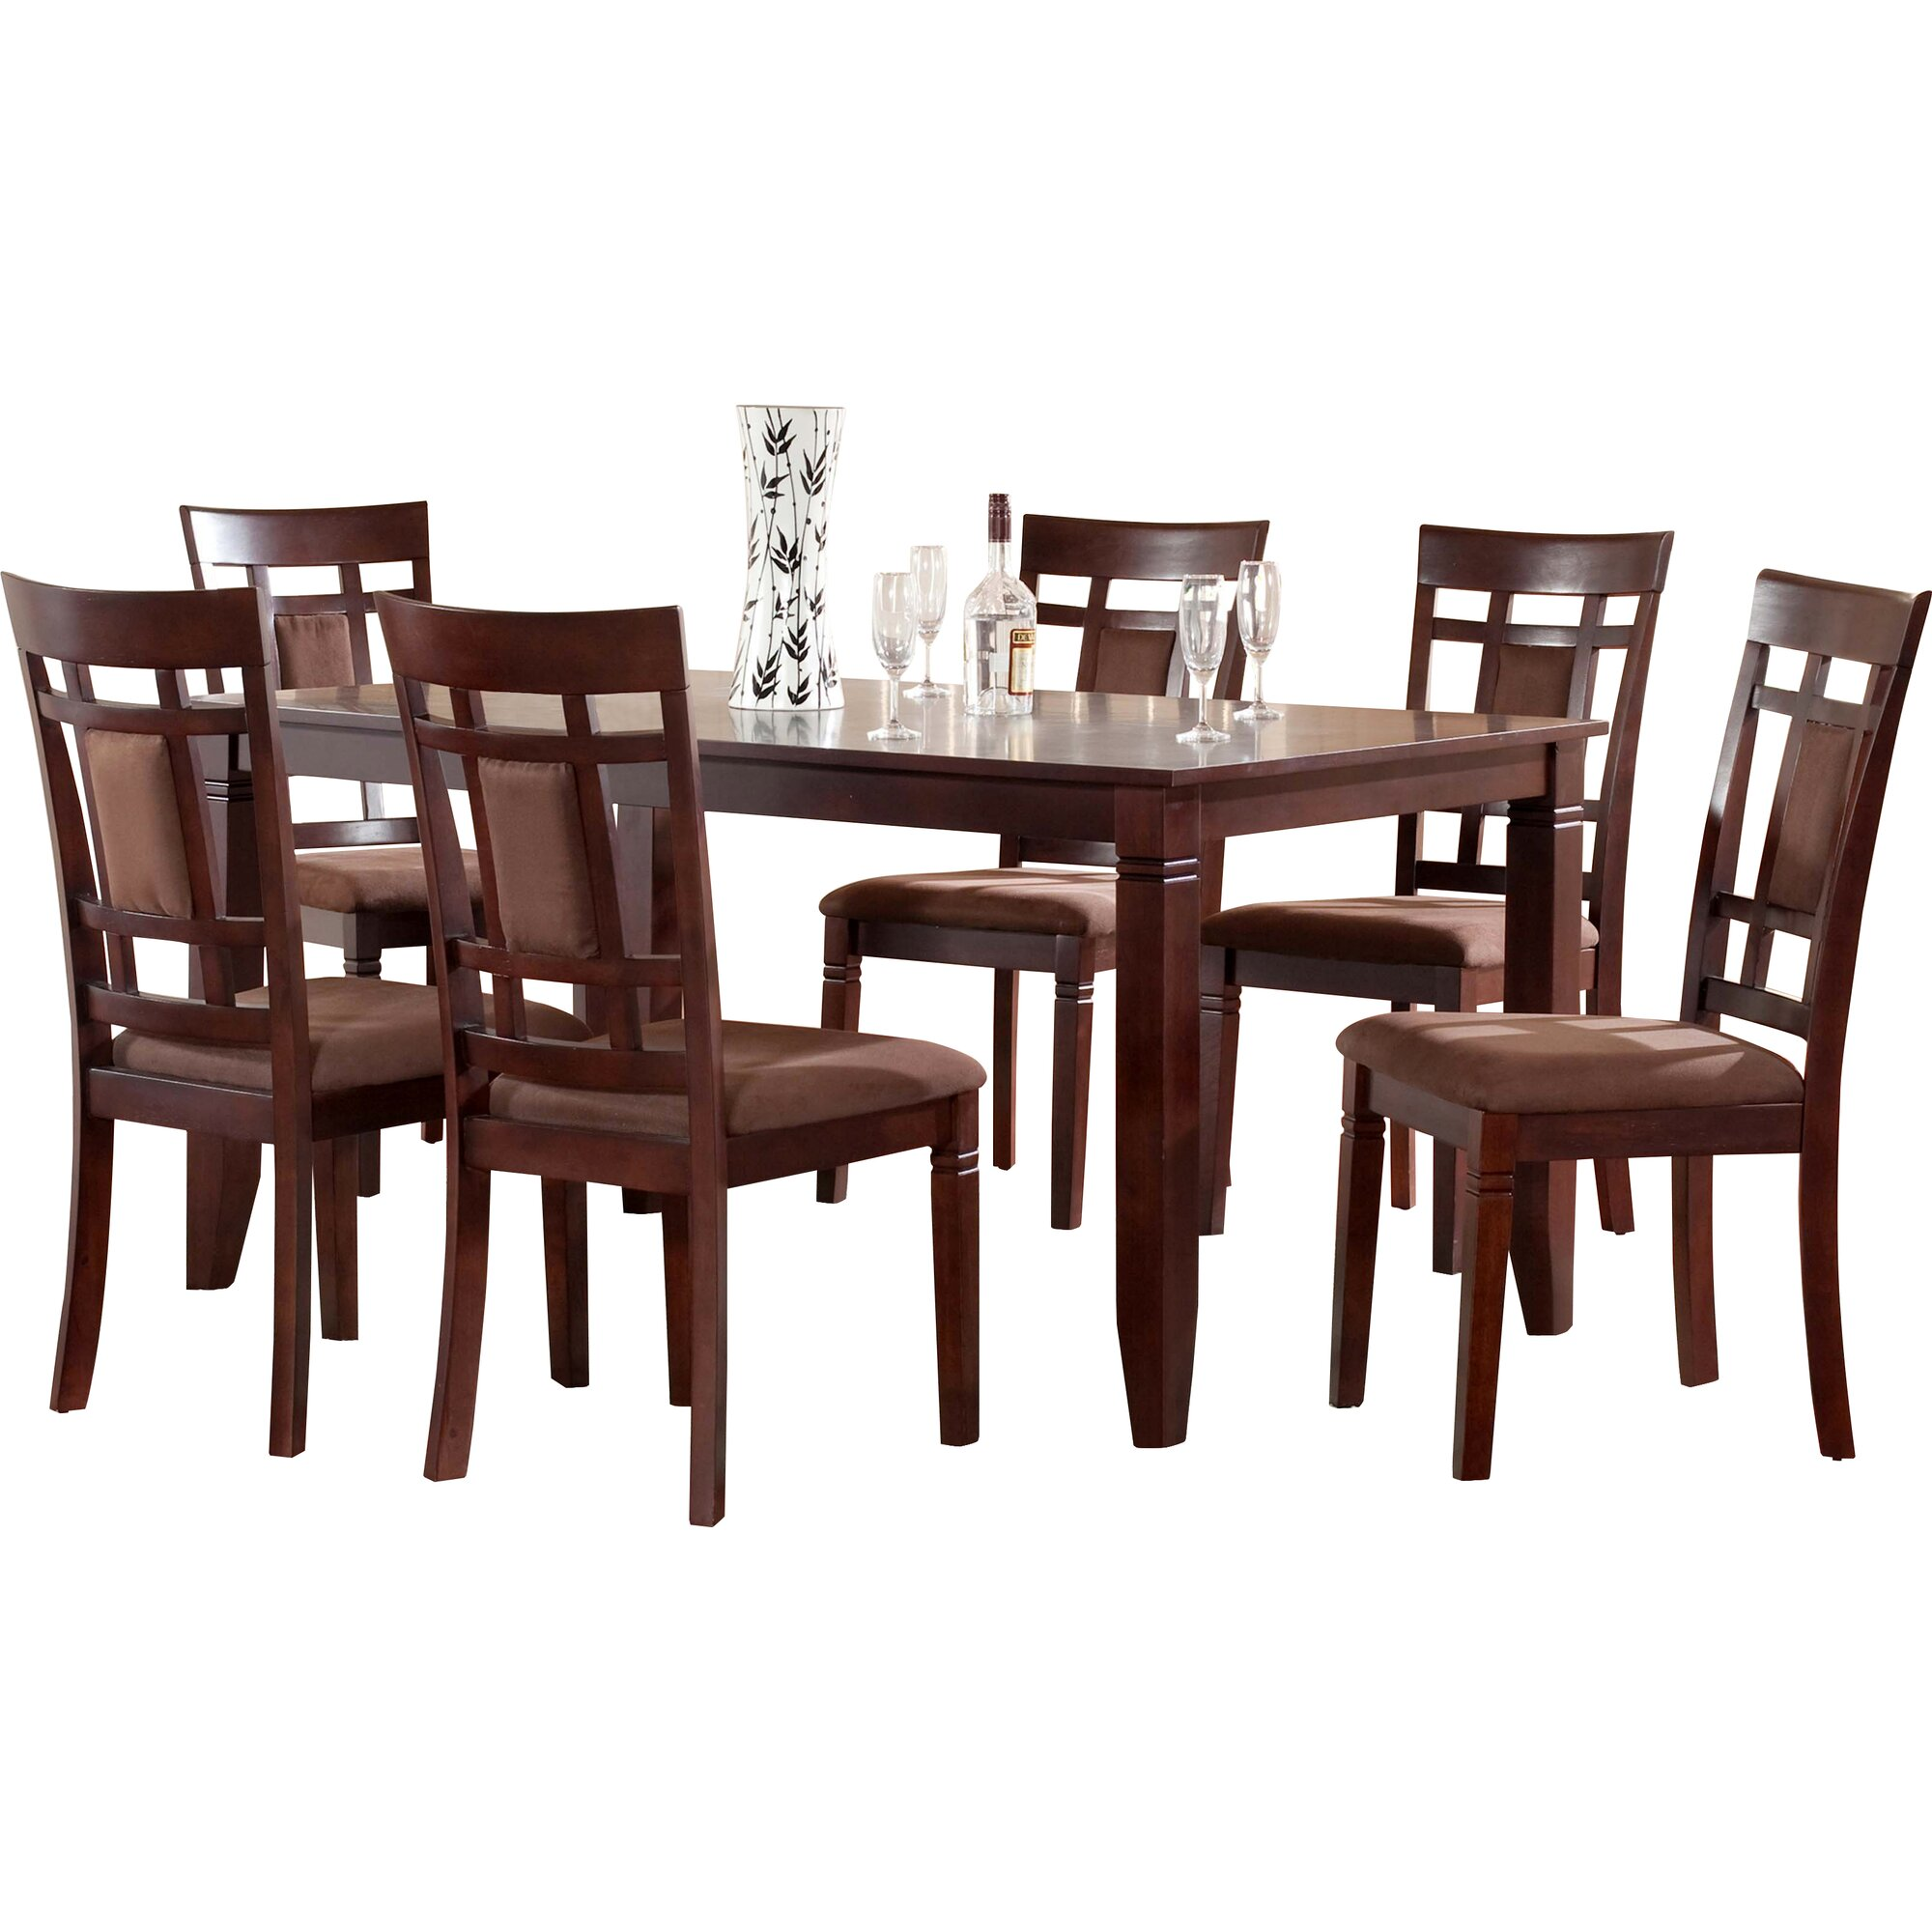 7 Piece Dining Set ~ World menagerie ighli piece dining set reviews